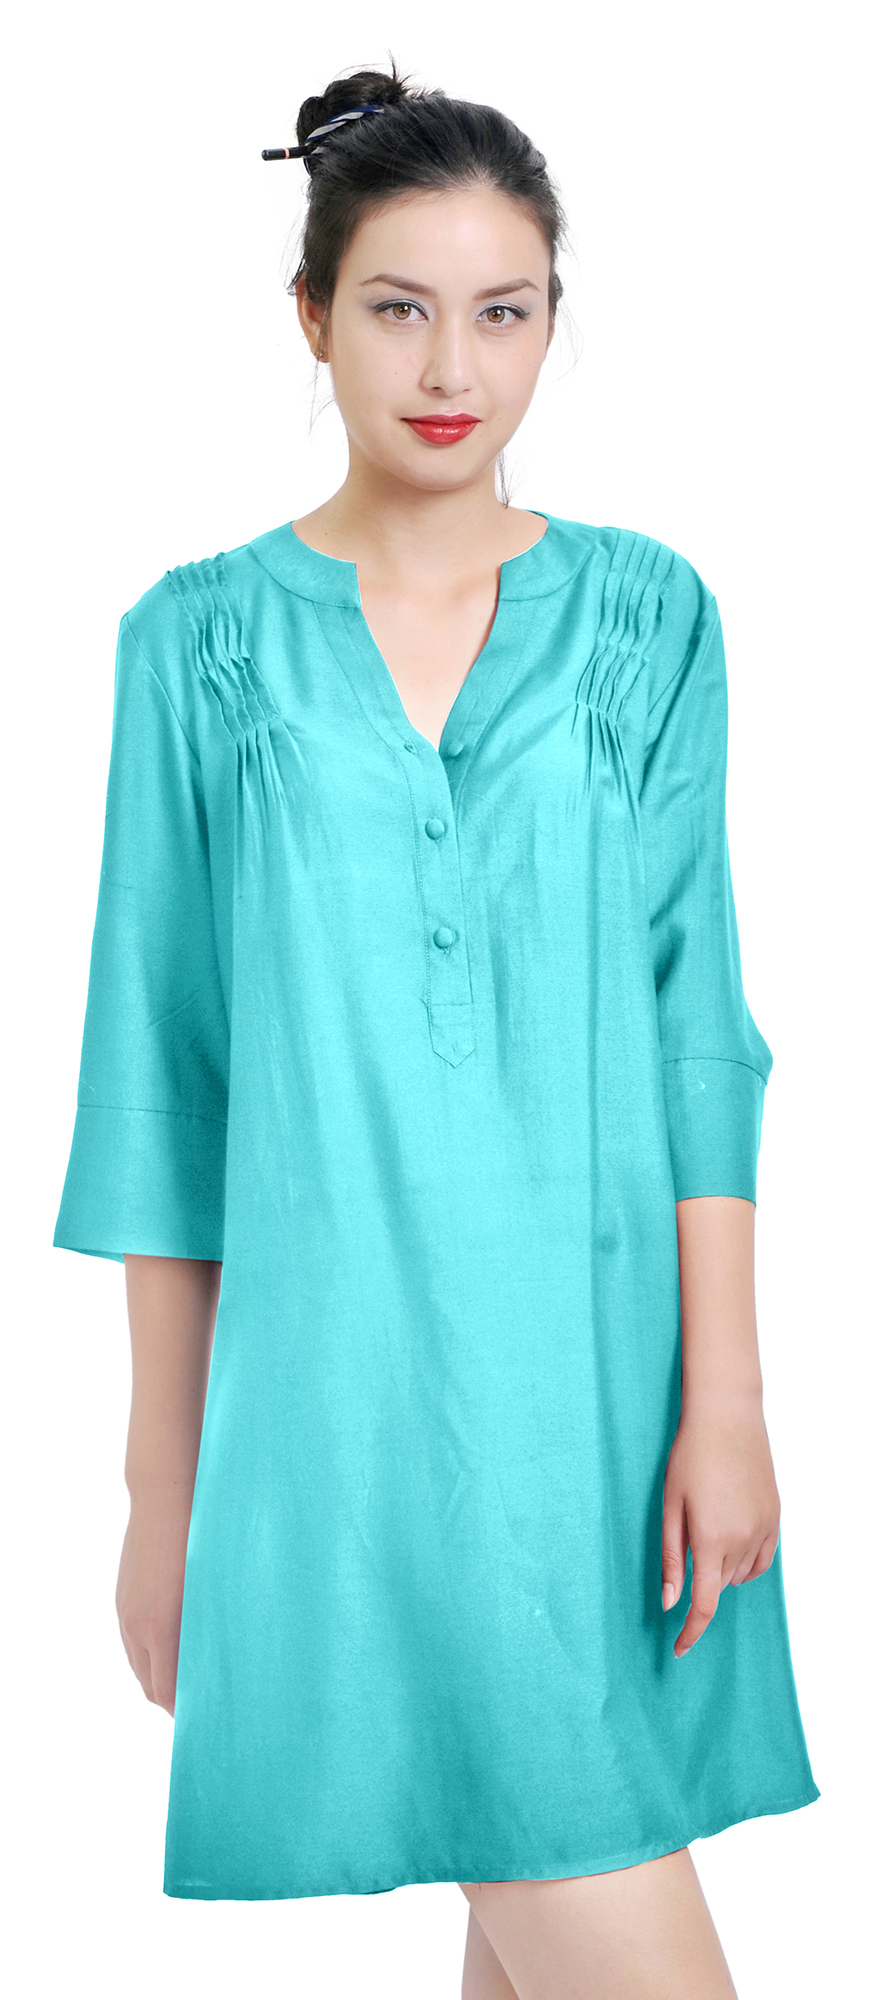 See all results for cotton tunics for women. She's Style. Women's Cotton Short Sleeve Lace Scoop Neck A-Line Tunic Blouse Tops. from $ 13 99 Prime. out of 5 stars levaca. Women's Fall Long Sleeve Side Split Loose Casual Pullover Tunic Tops $ 19 99 Prime. out of 5 stars Romwe.